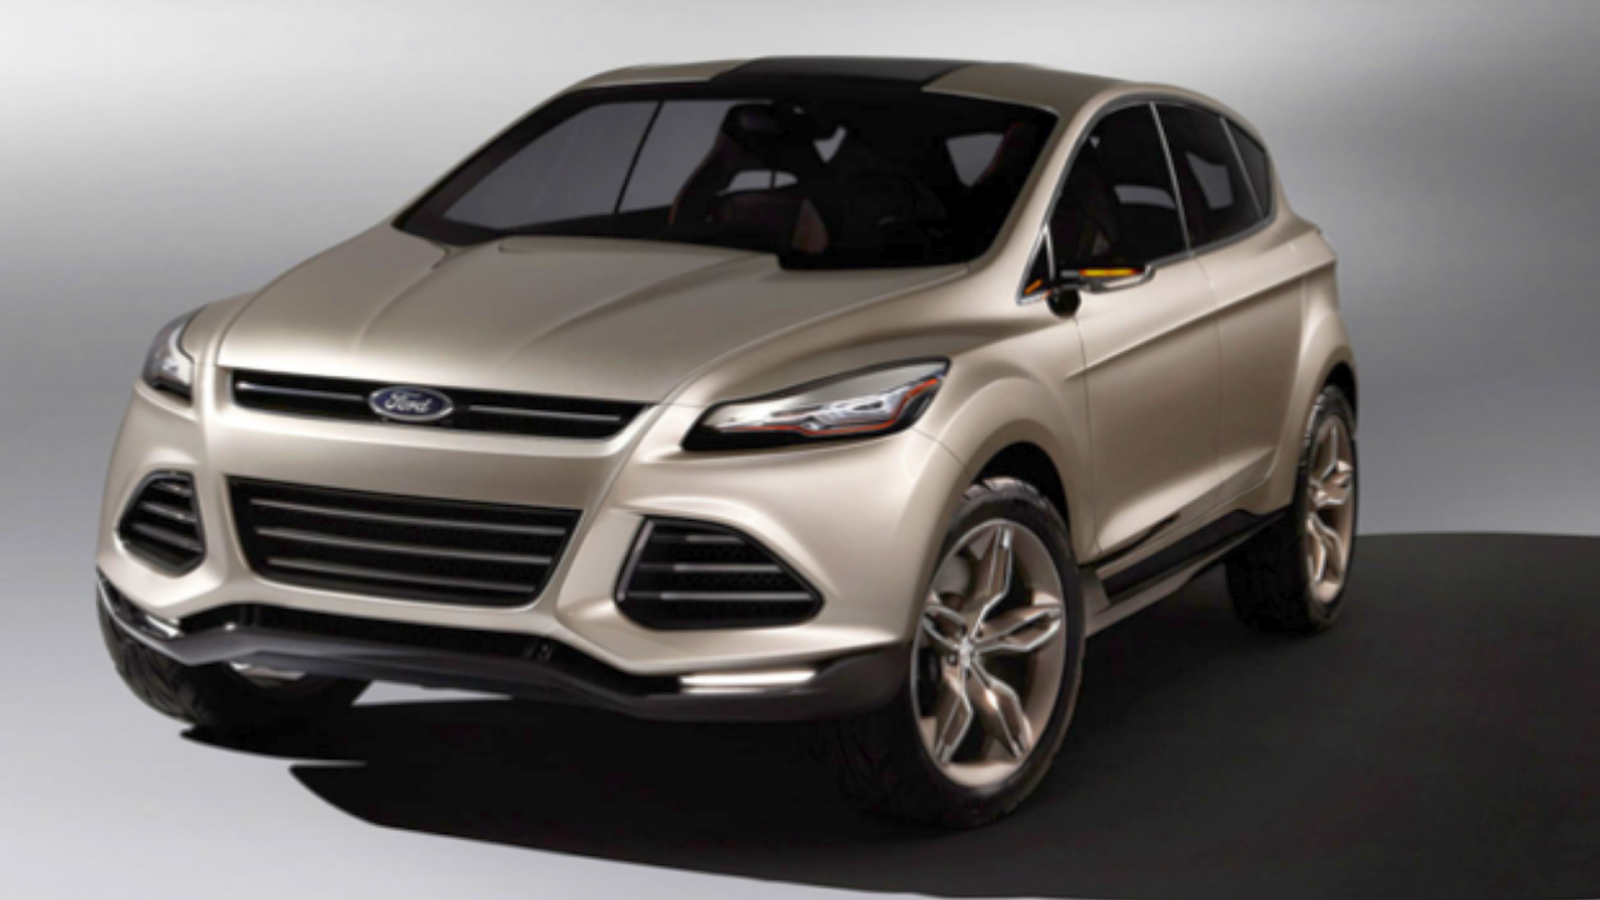 2018 ford escape titanium price release date and review ford escape manual. Black Bedroom Furniture Sets. Home Design Ideas